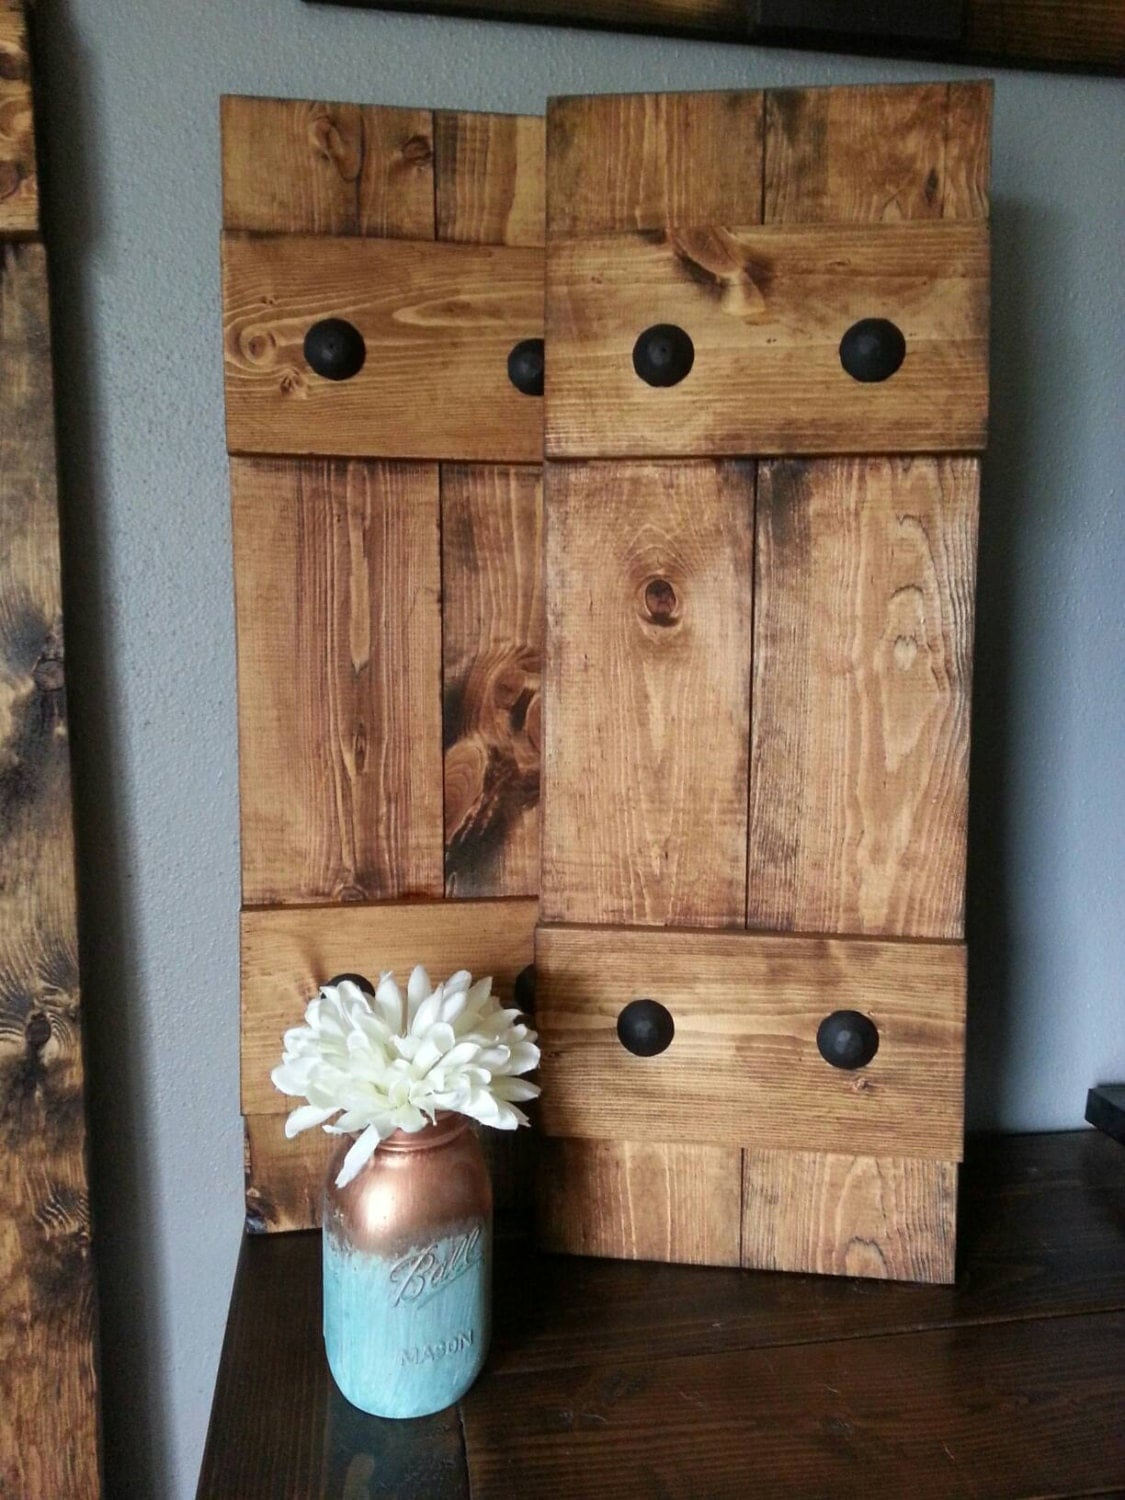 Rustic wood shutters with clavos decorative shutters - Decorative window shutters exterior ...